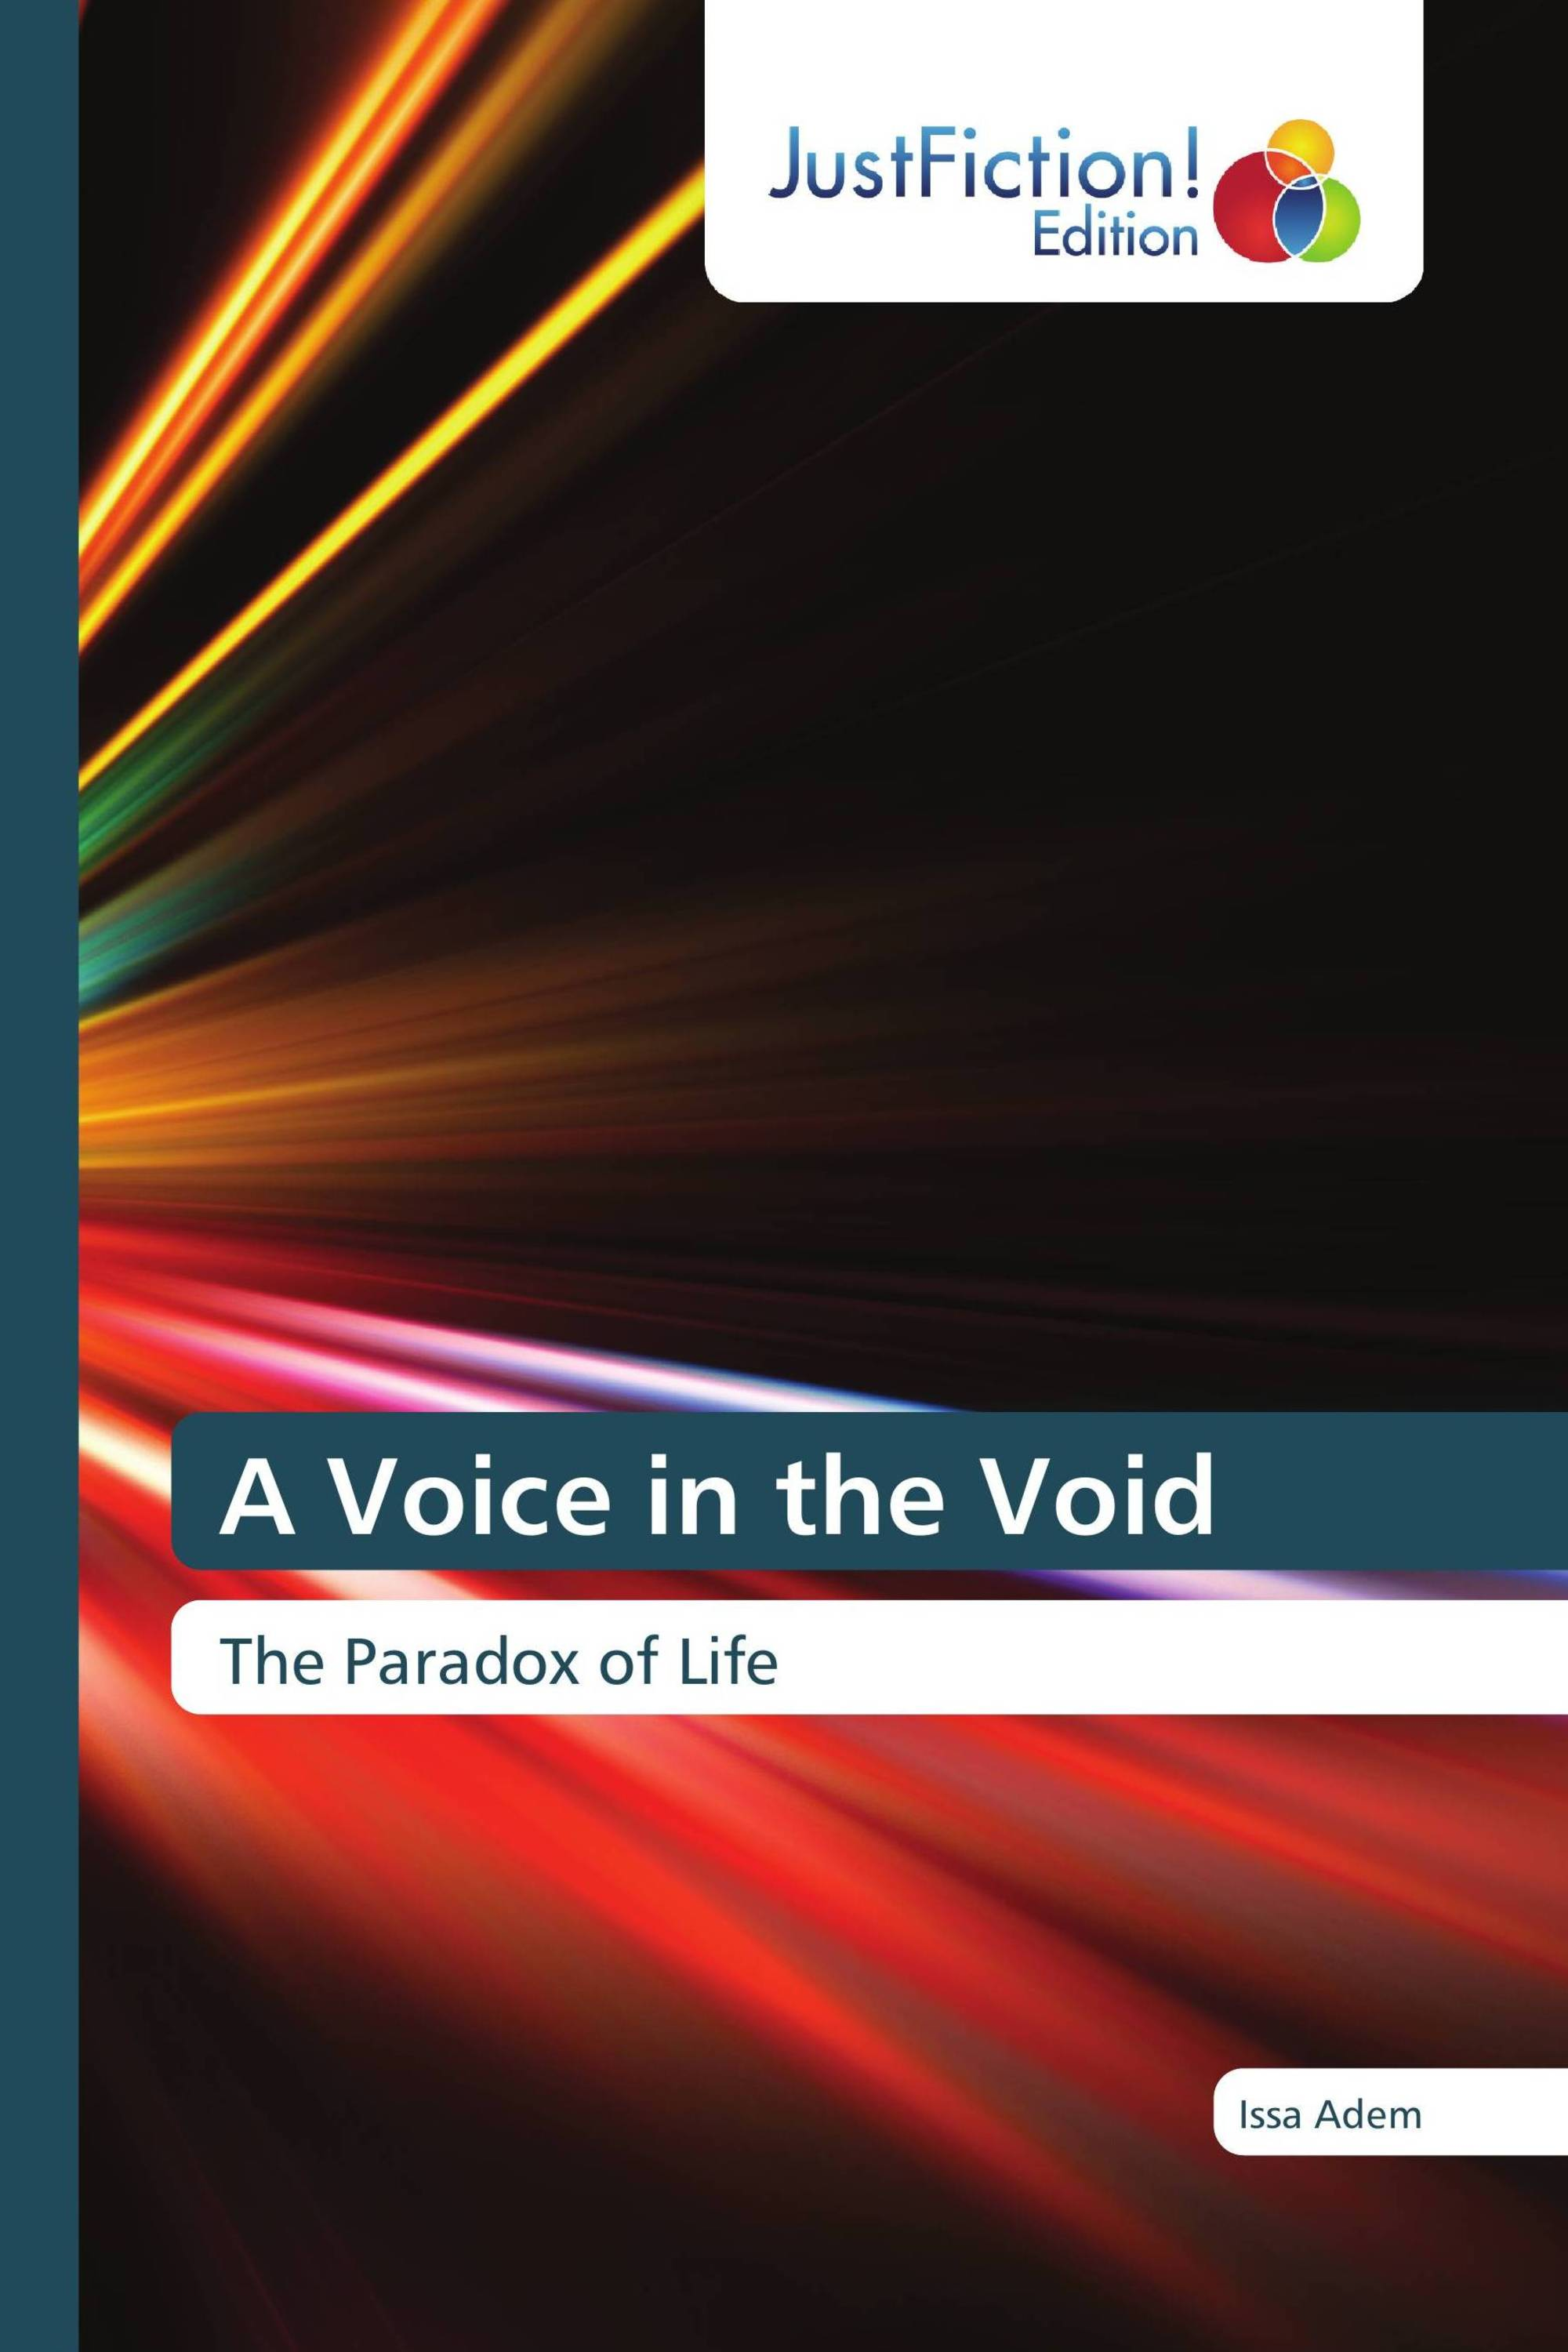 A Voice in the Void